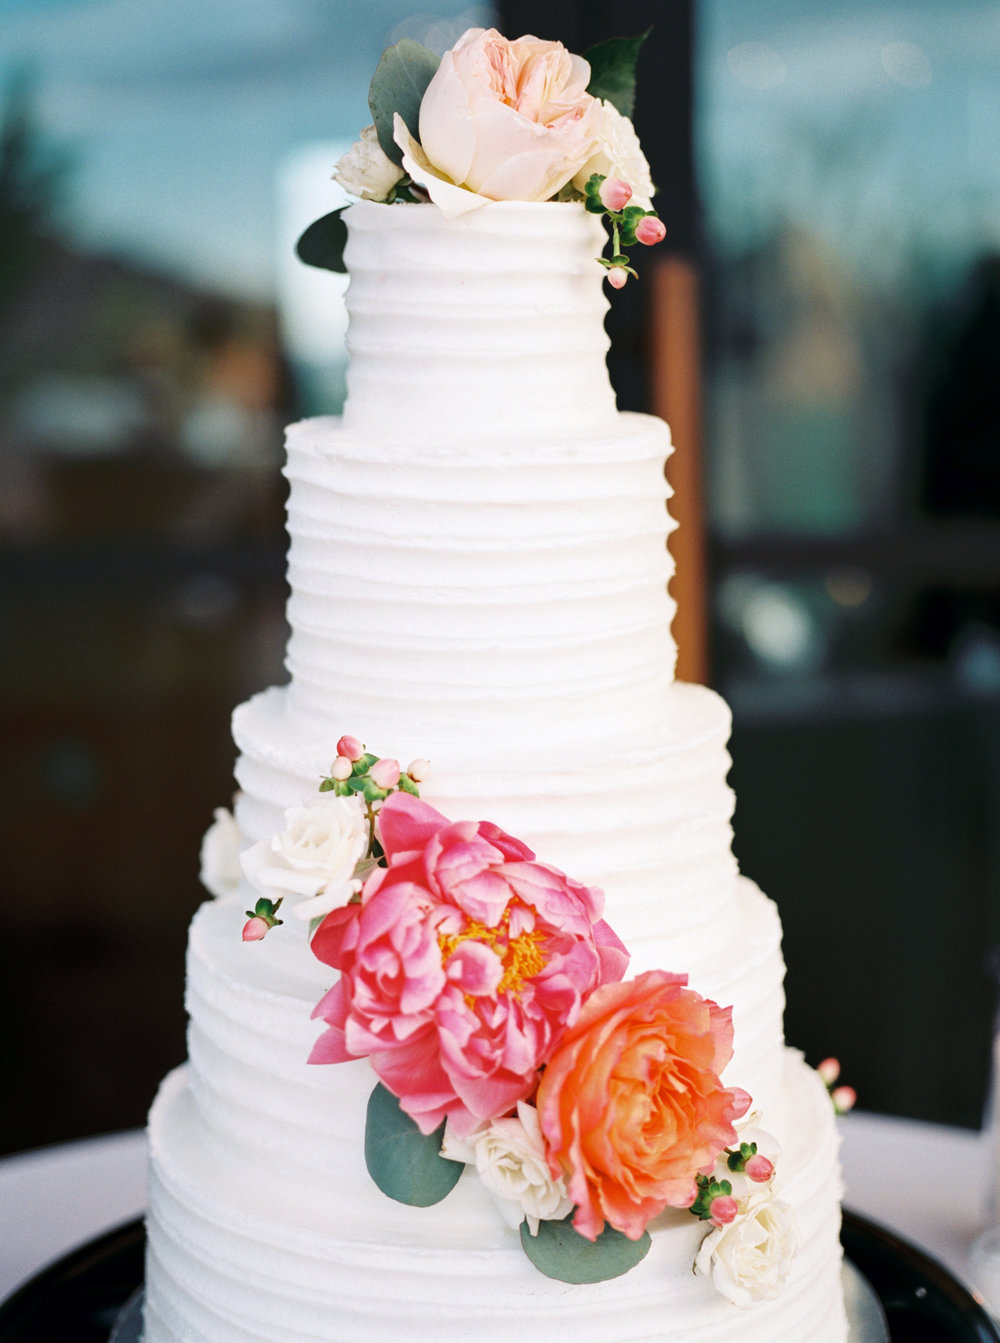 wedding cake, tiered wedding cake, classic wedding cake, white wedding cake, cake flowers